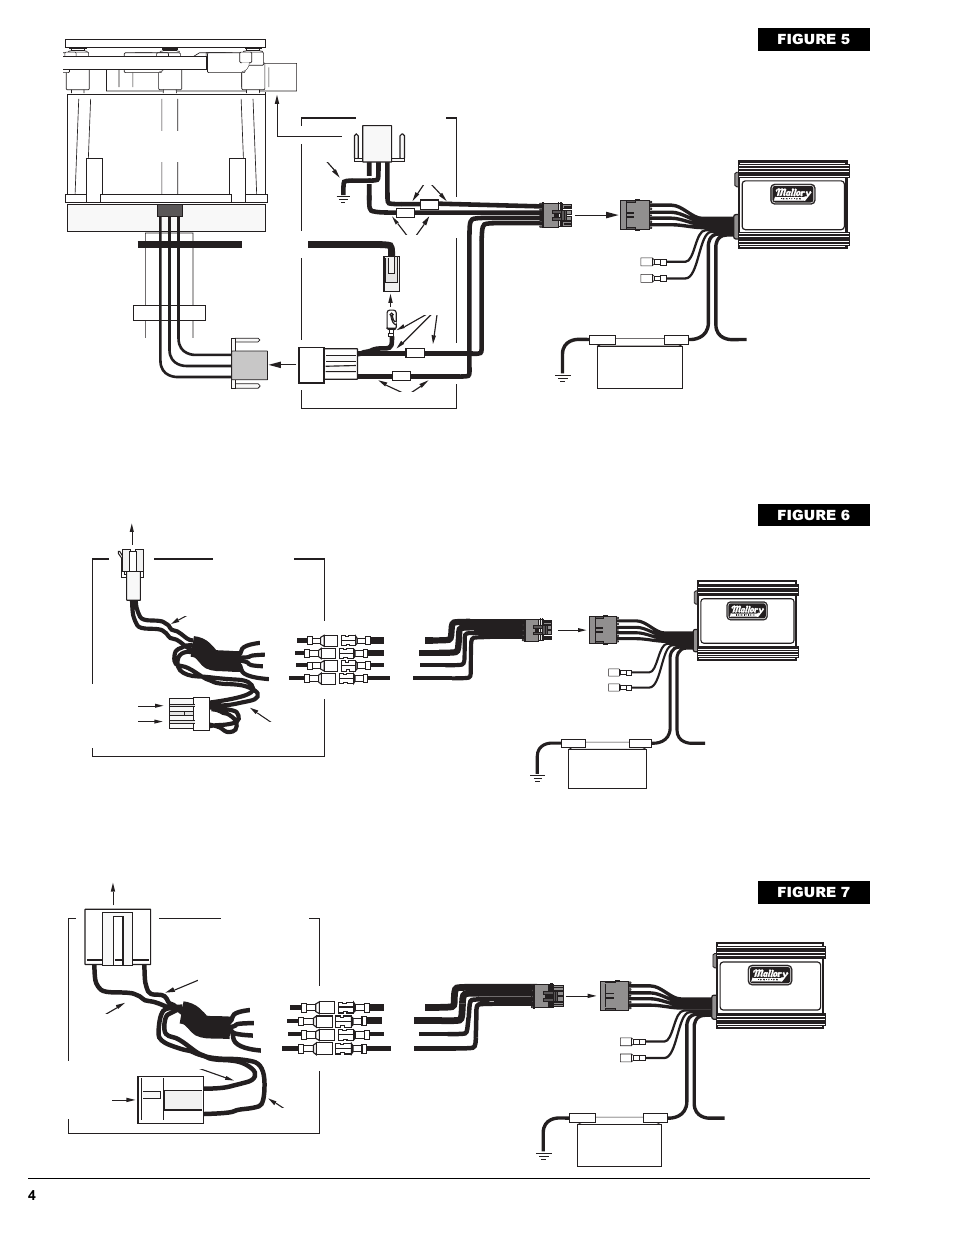 WRG-4948] Mallory Ignition Hyfire Wiring Diagram on